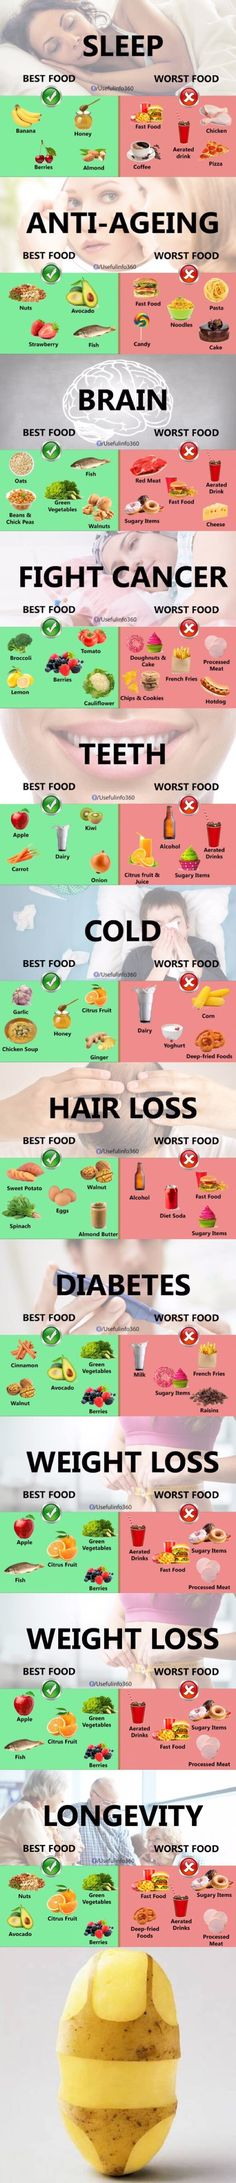 Best and worst FOOD